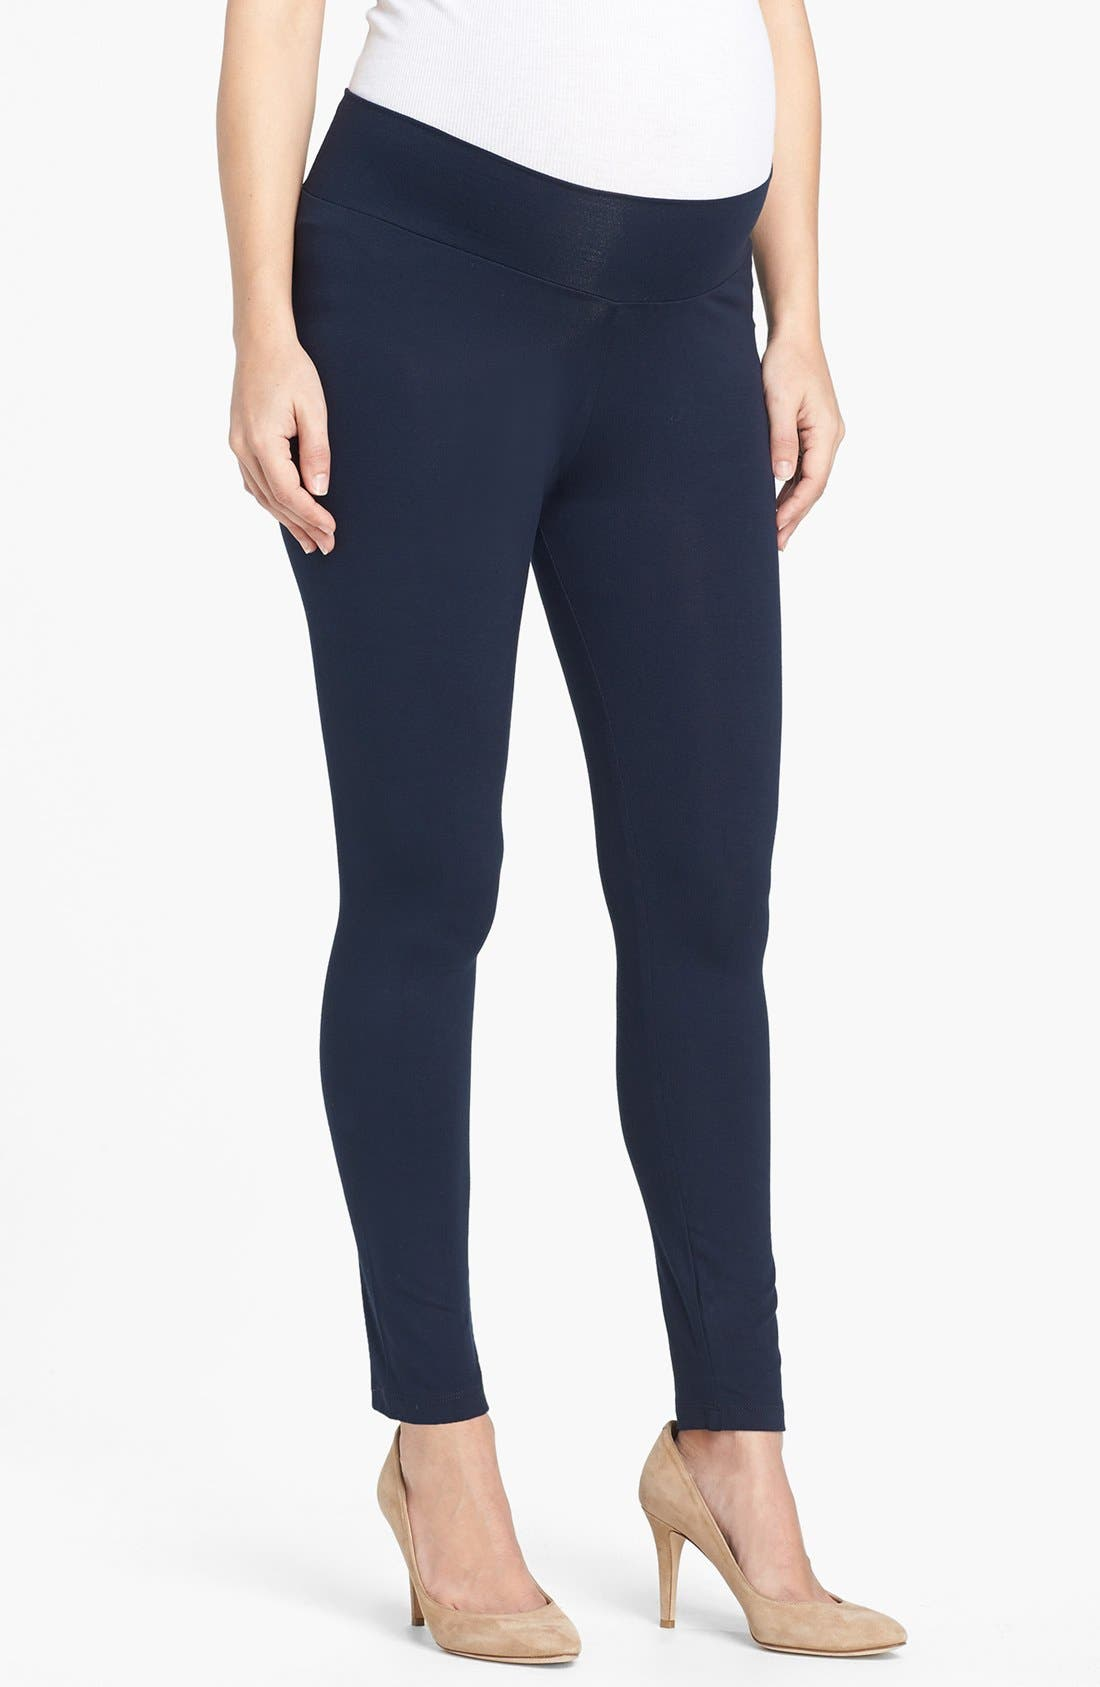 Maternity Leggings,                             Main thumbnail 1, color,                             Navy